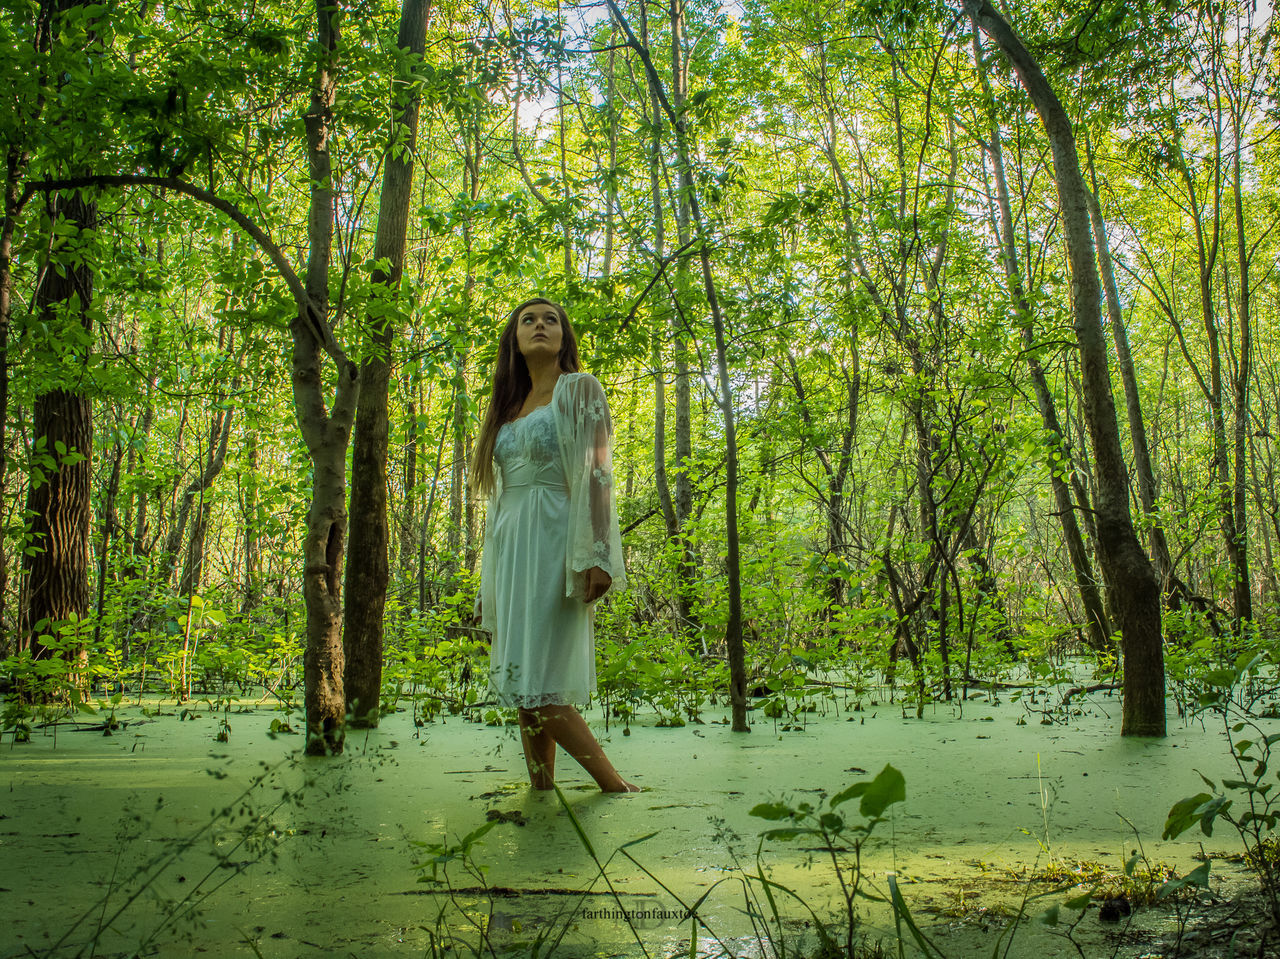 The Portraitist - 2017 EyeEm Awards Tree Full Length Green Color Young Women Nature Growth Women Real People People Outdoors One Person StateParks Statepark Audubon Modelphotography Model Shoot Model Photography Nature_collection Kentucky  Art Is Everywhere Nature Collection Beauty In Nature Model Models